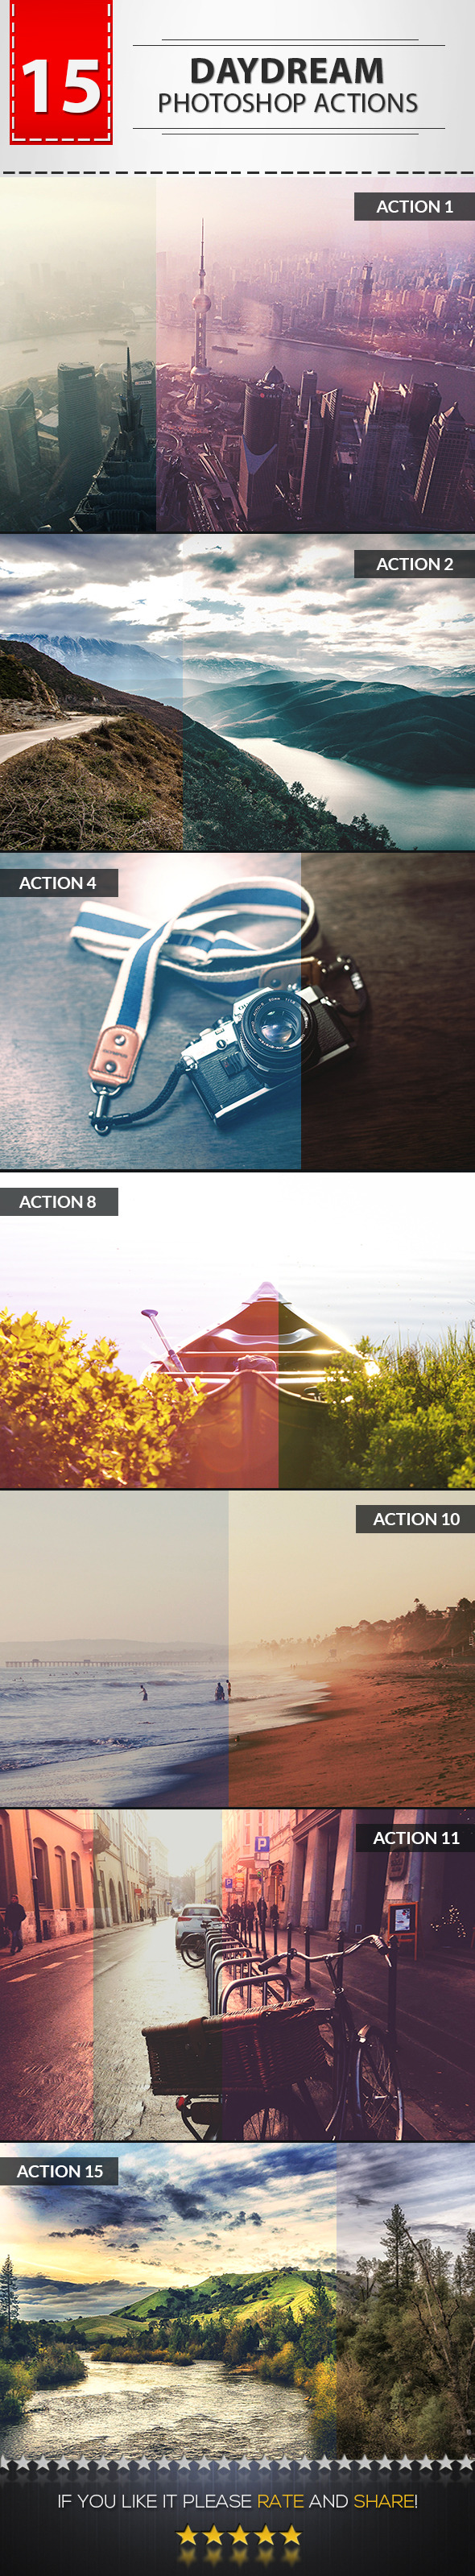 15 Daydream Photoshop Actions - Photo Effects Actions